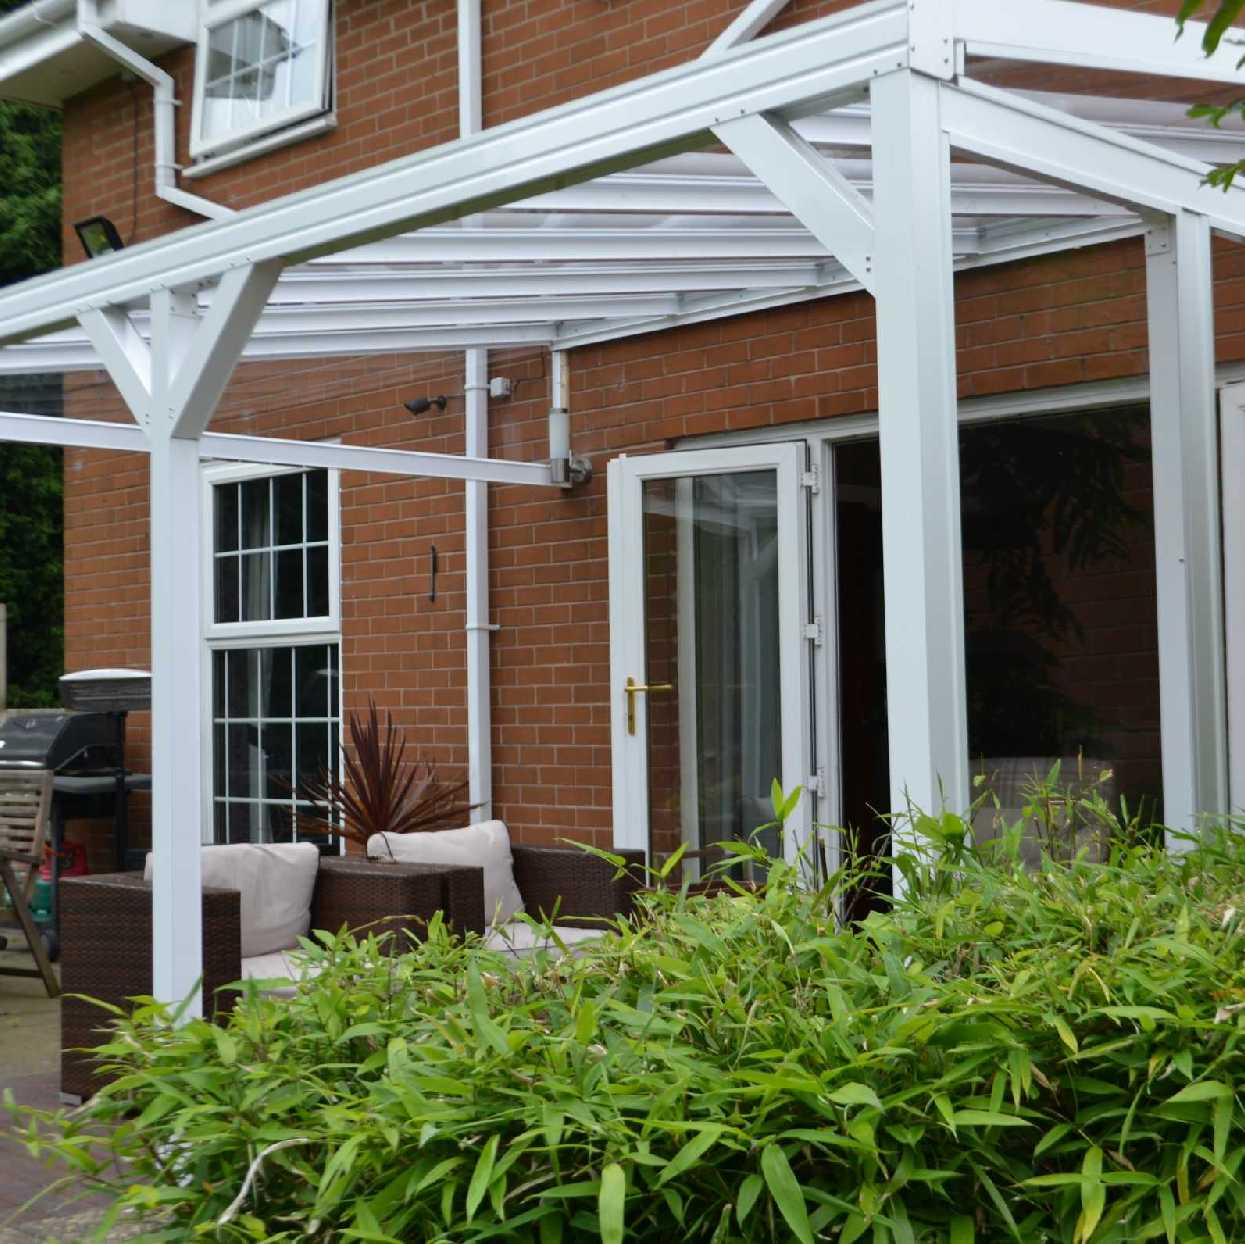 Omega Smart Lean-To Canopy with 6mm Glass Clear Plate Polycarbonate Glazing - 6.3m (W) x 4.0m (P), (4) Supporting Posts from Omega Build